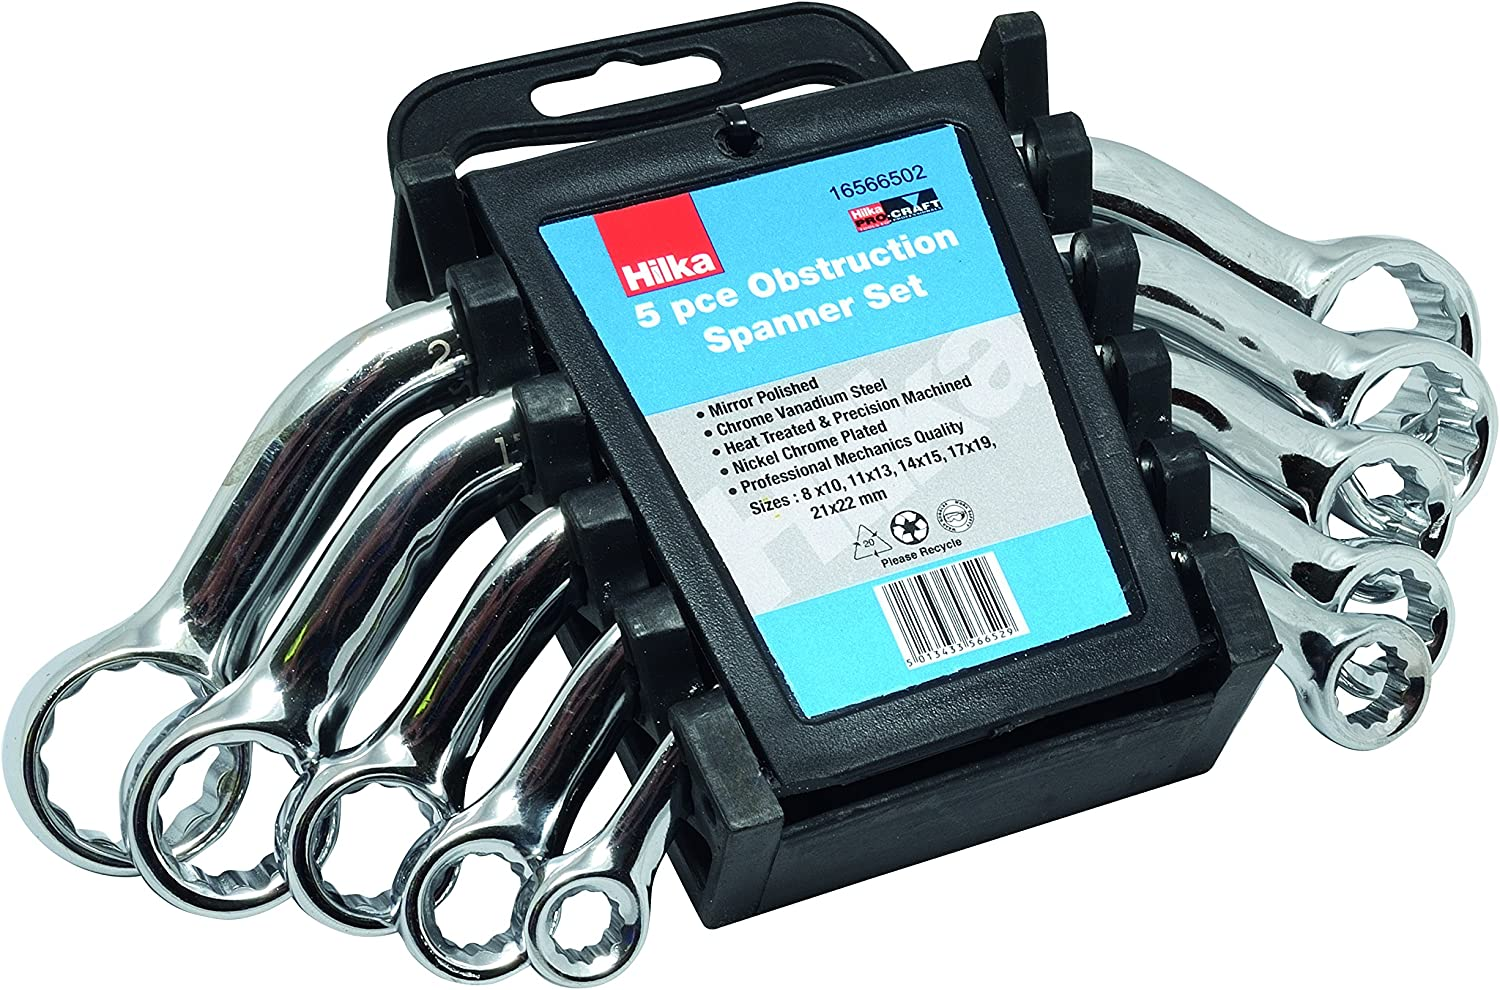 Combination Spanner Set 16 Metric Spanners 6-22mm by Hilka